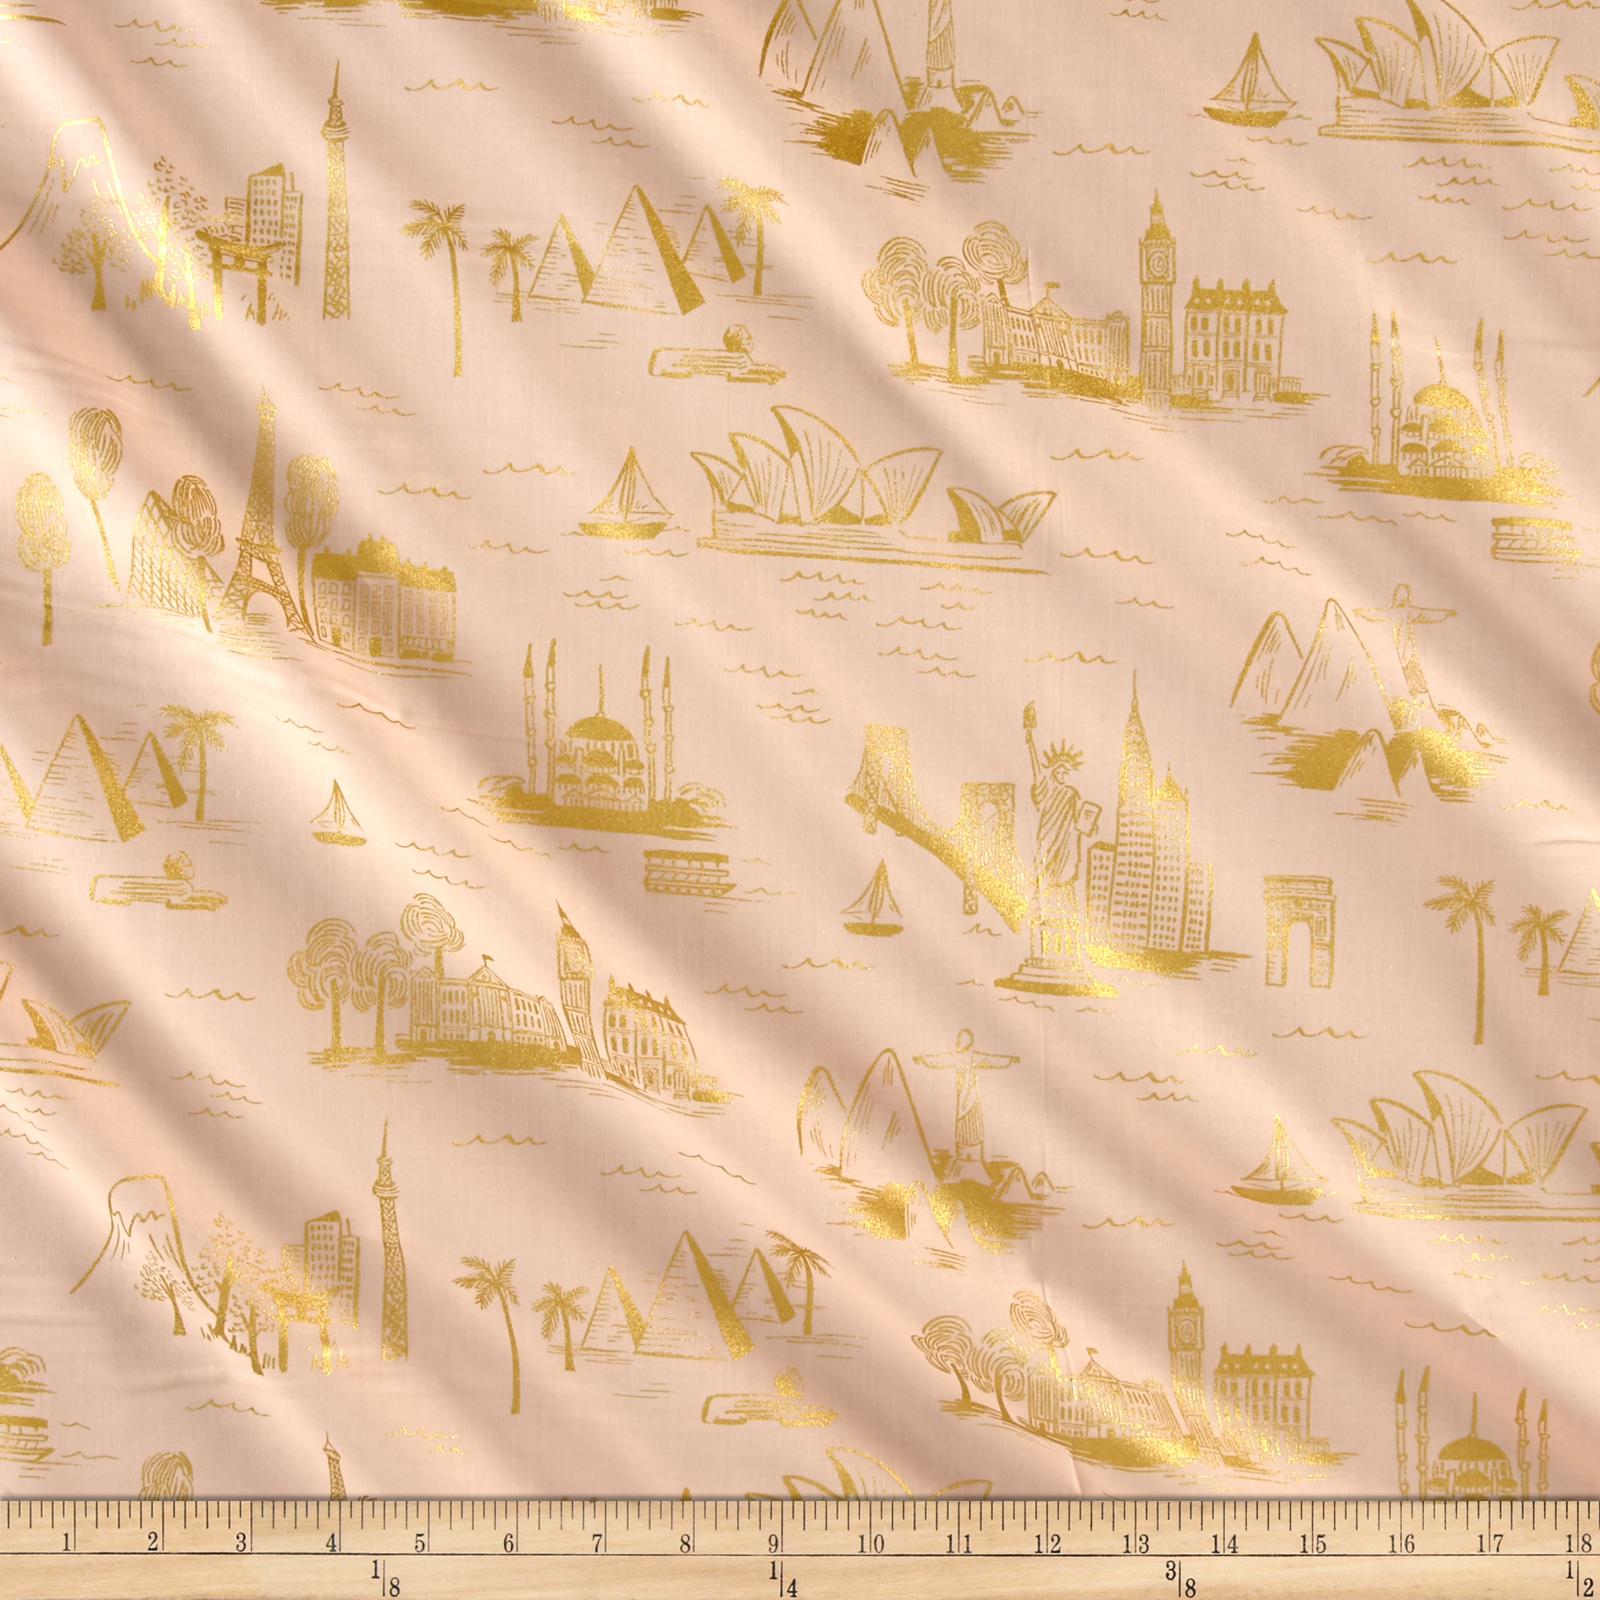 Cotton + Steel Rifle Paper Co. Les Fleurs Lawn Metallic City Toile Peach Fabric by Cotton & Steel in USA